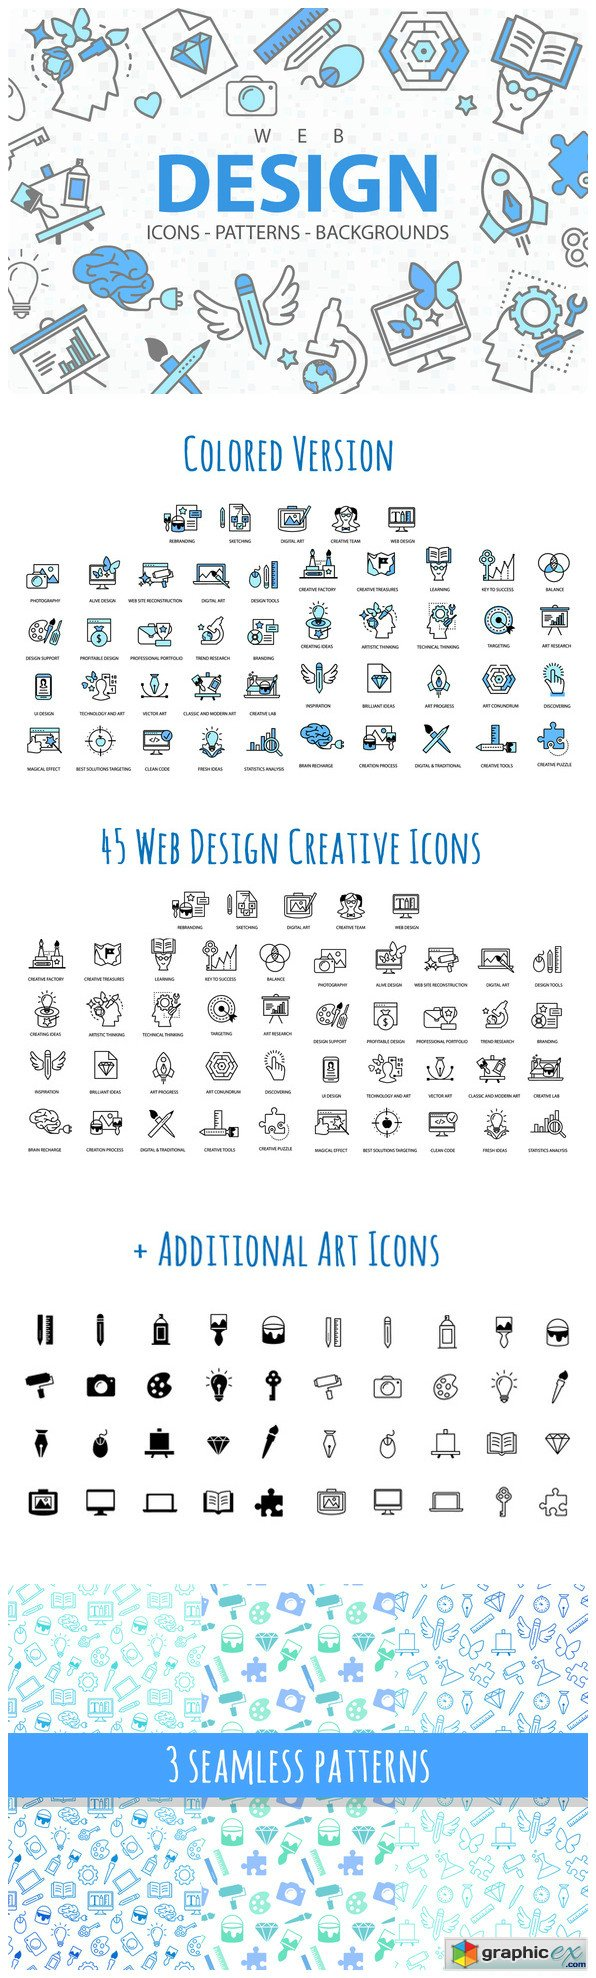 Web Design Icons Patterns and More